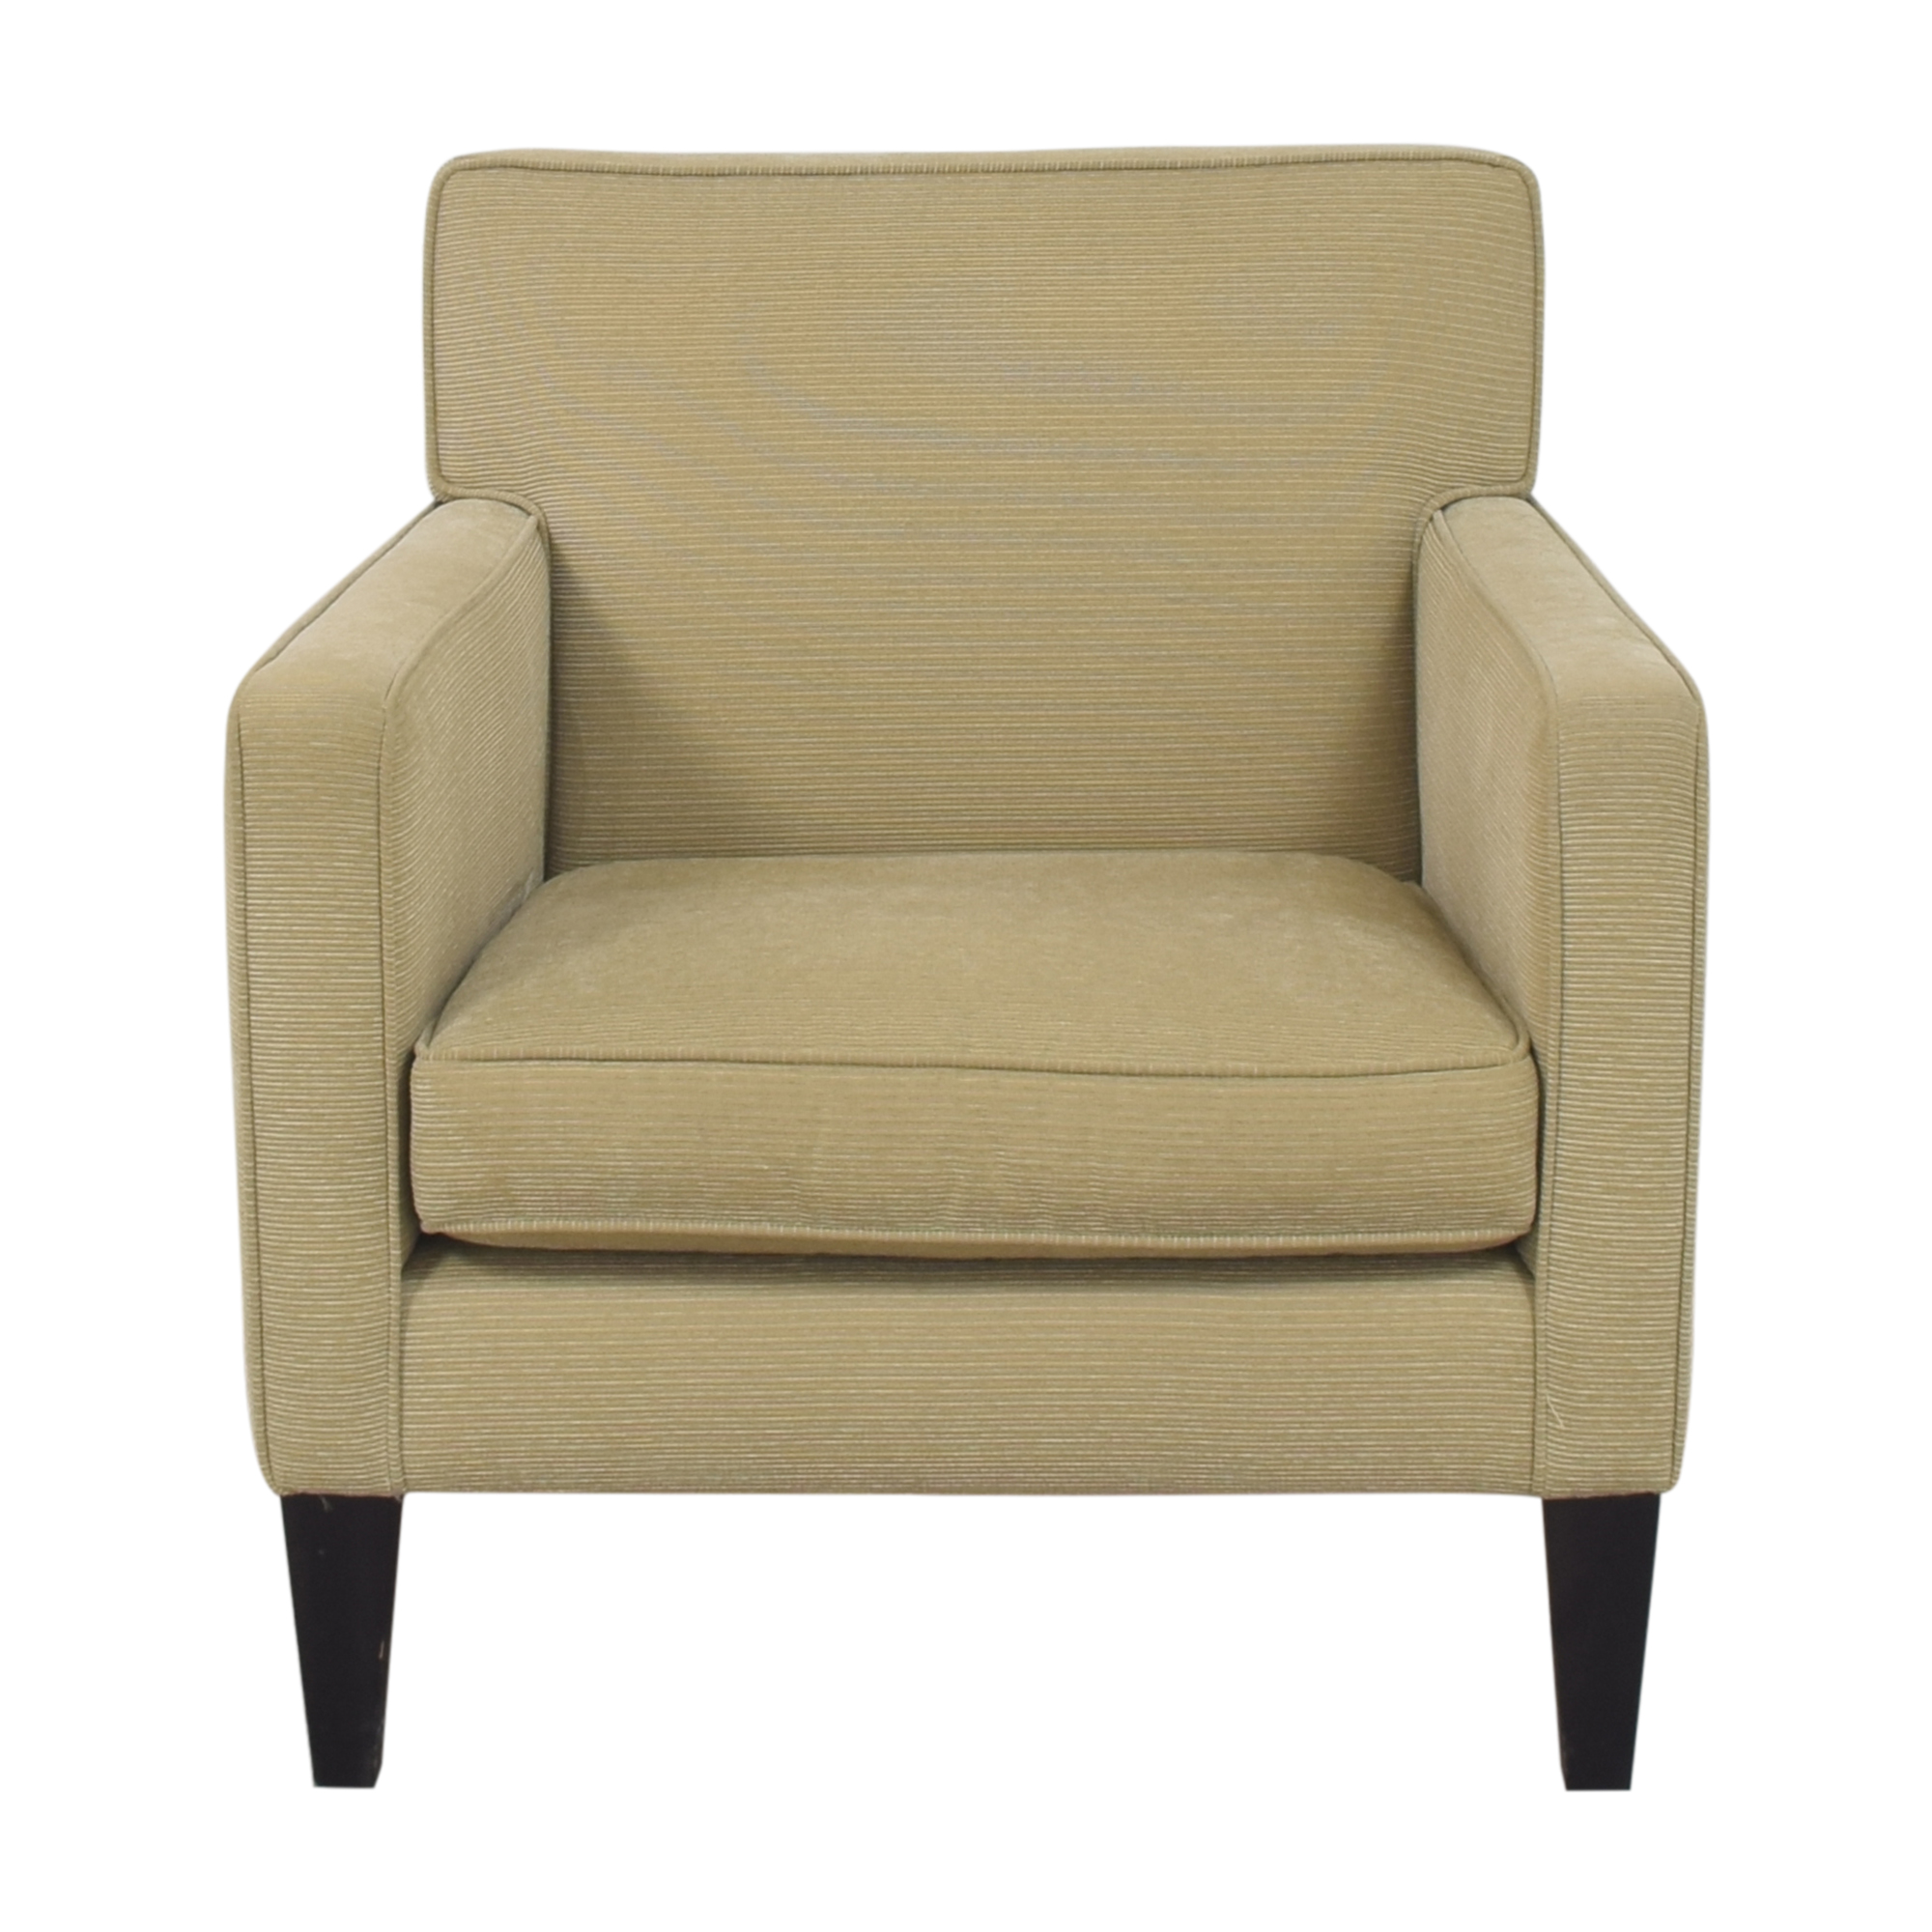 Crate & Barrel Crate & Barrel Tight Back Accent Chair second hand